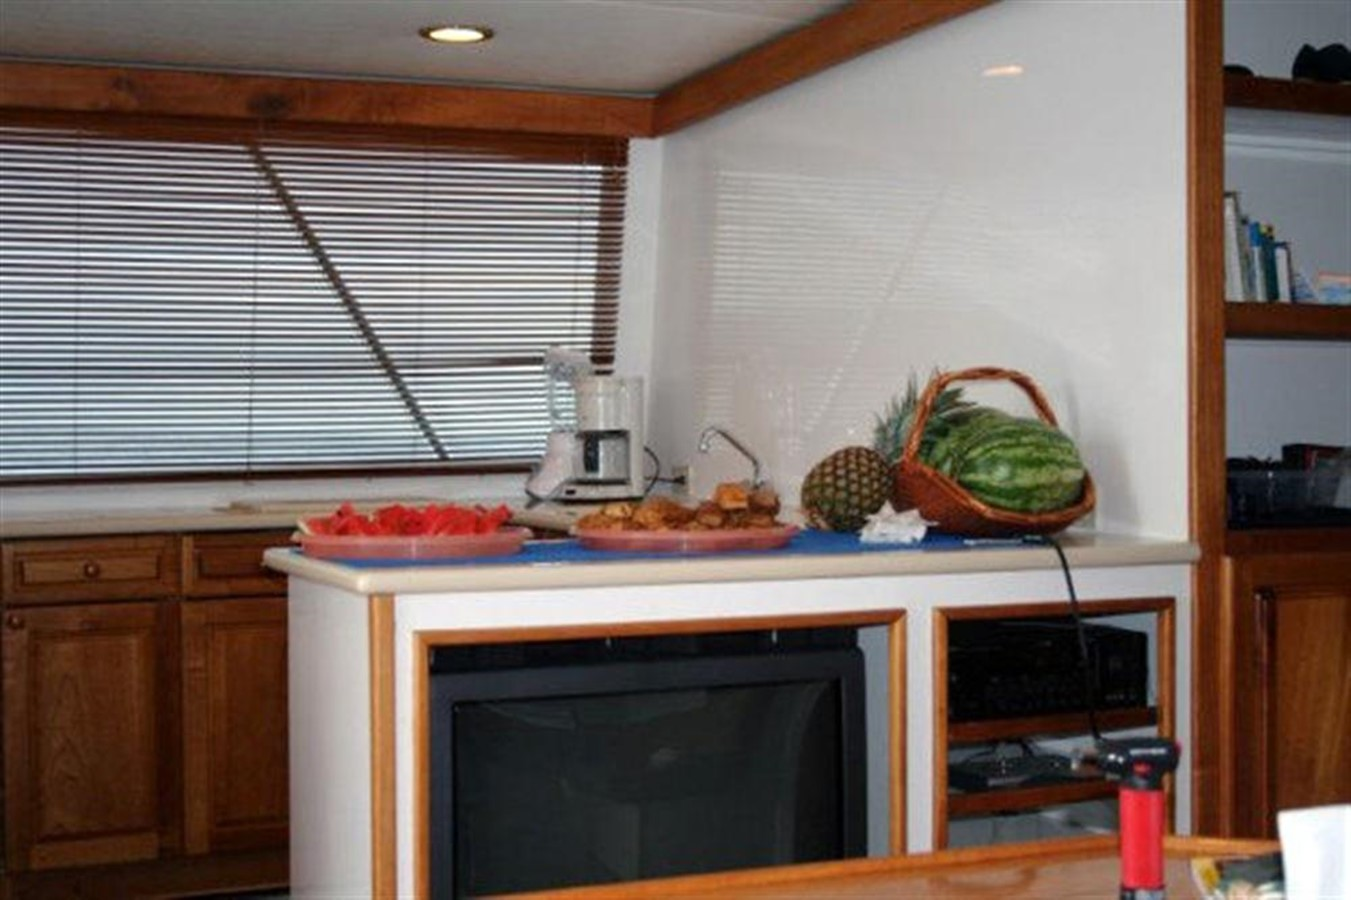 GALLEY 1998 CUSTOM Mick Jarrod PowerCat Sportfisher/Dive Boat Catamaran 156657